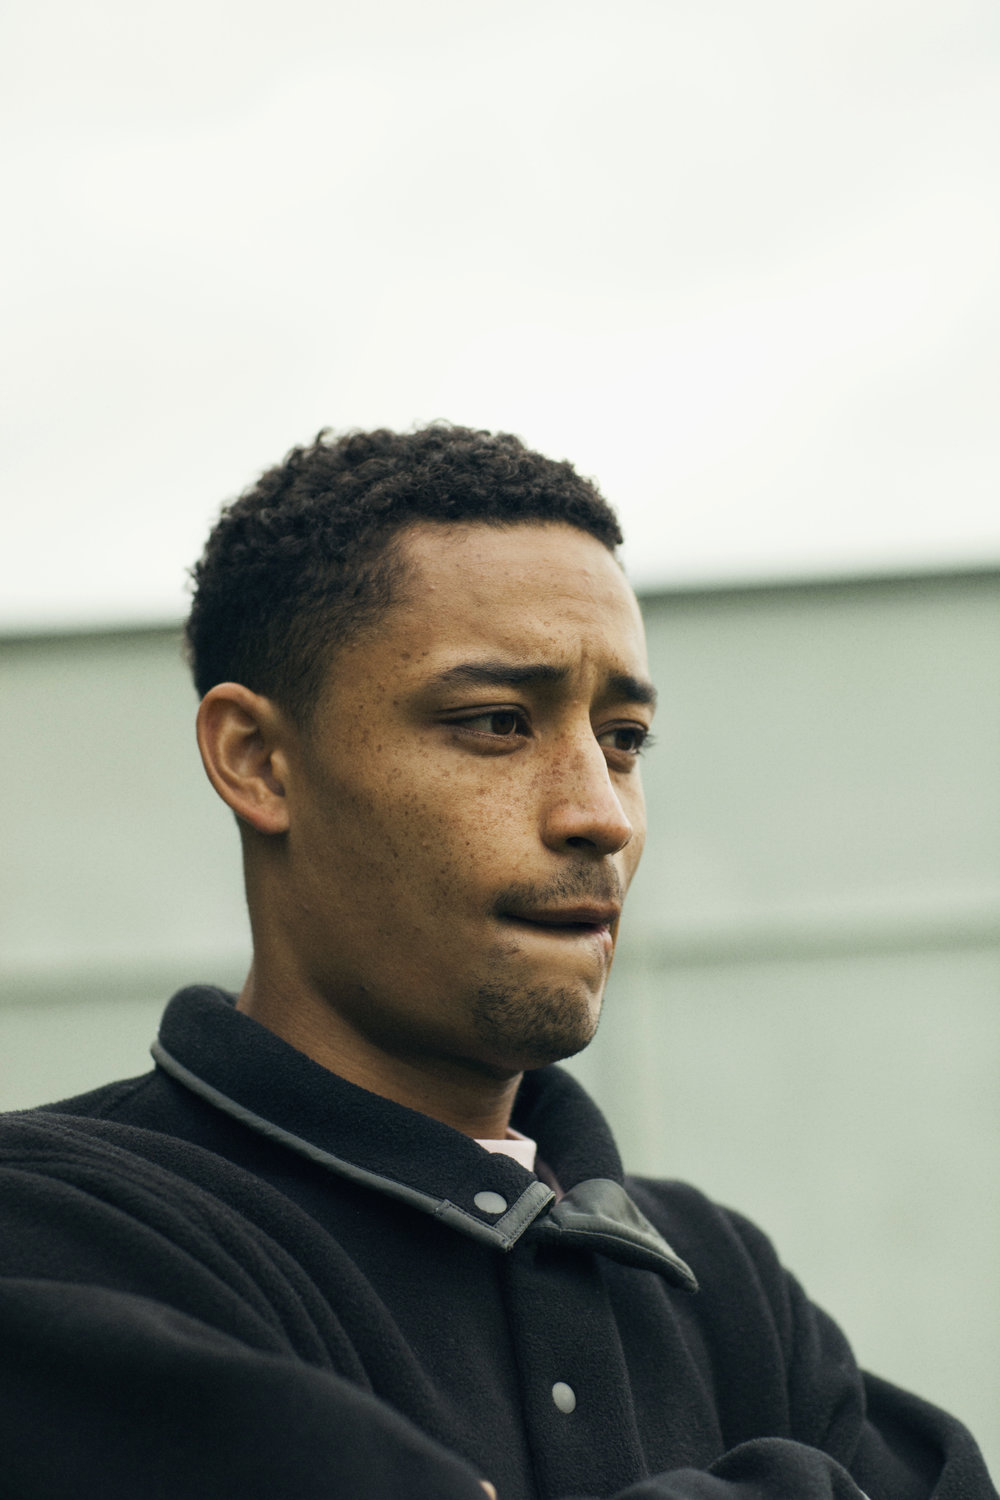 Loyle Carner / The Fader